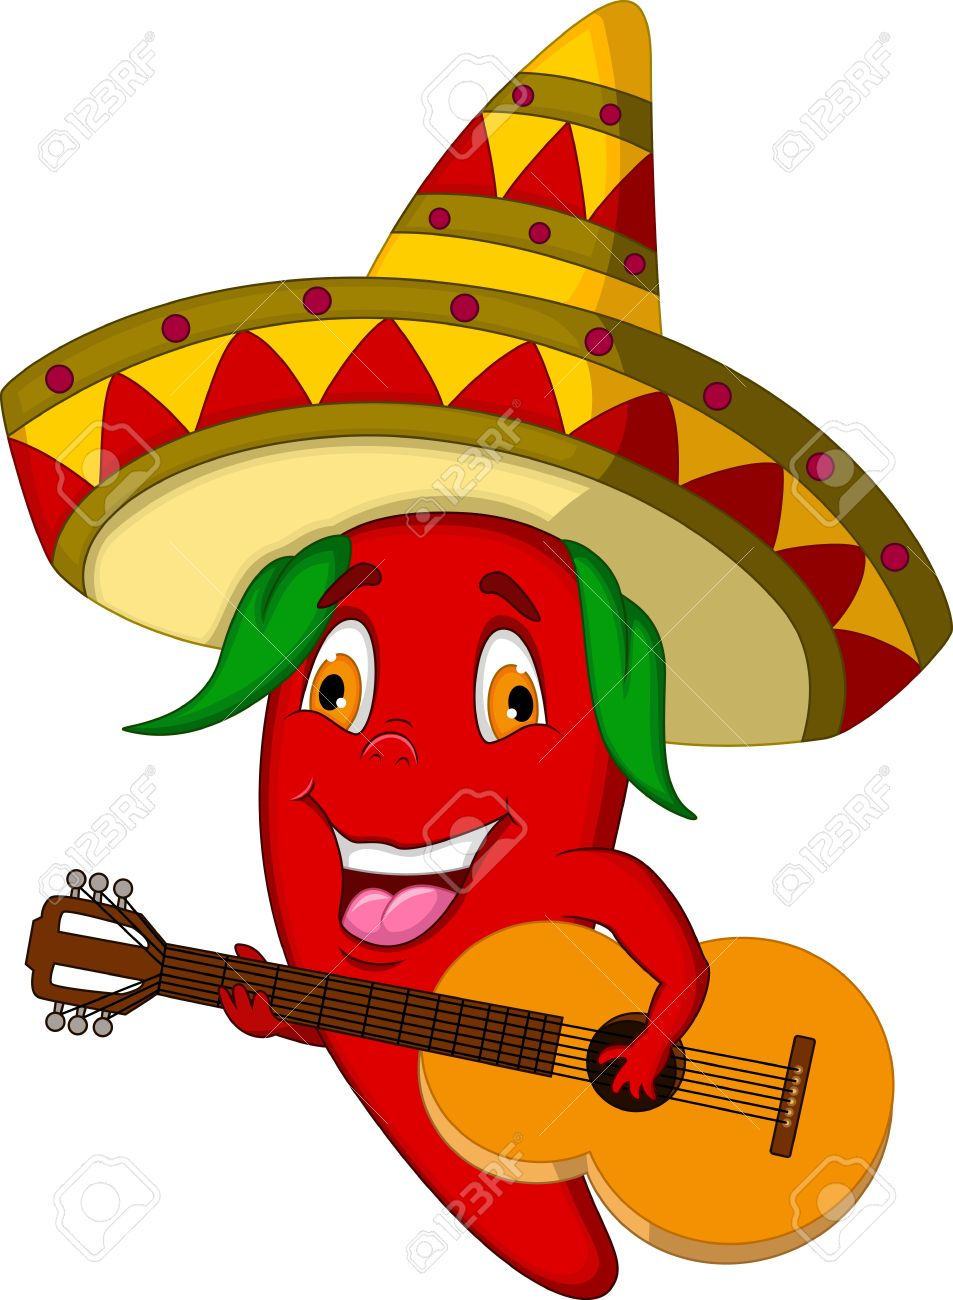 953x1300 Red Chili Pepper Cartoon Character With Mexican Hat And Mustache